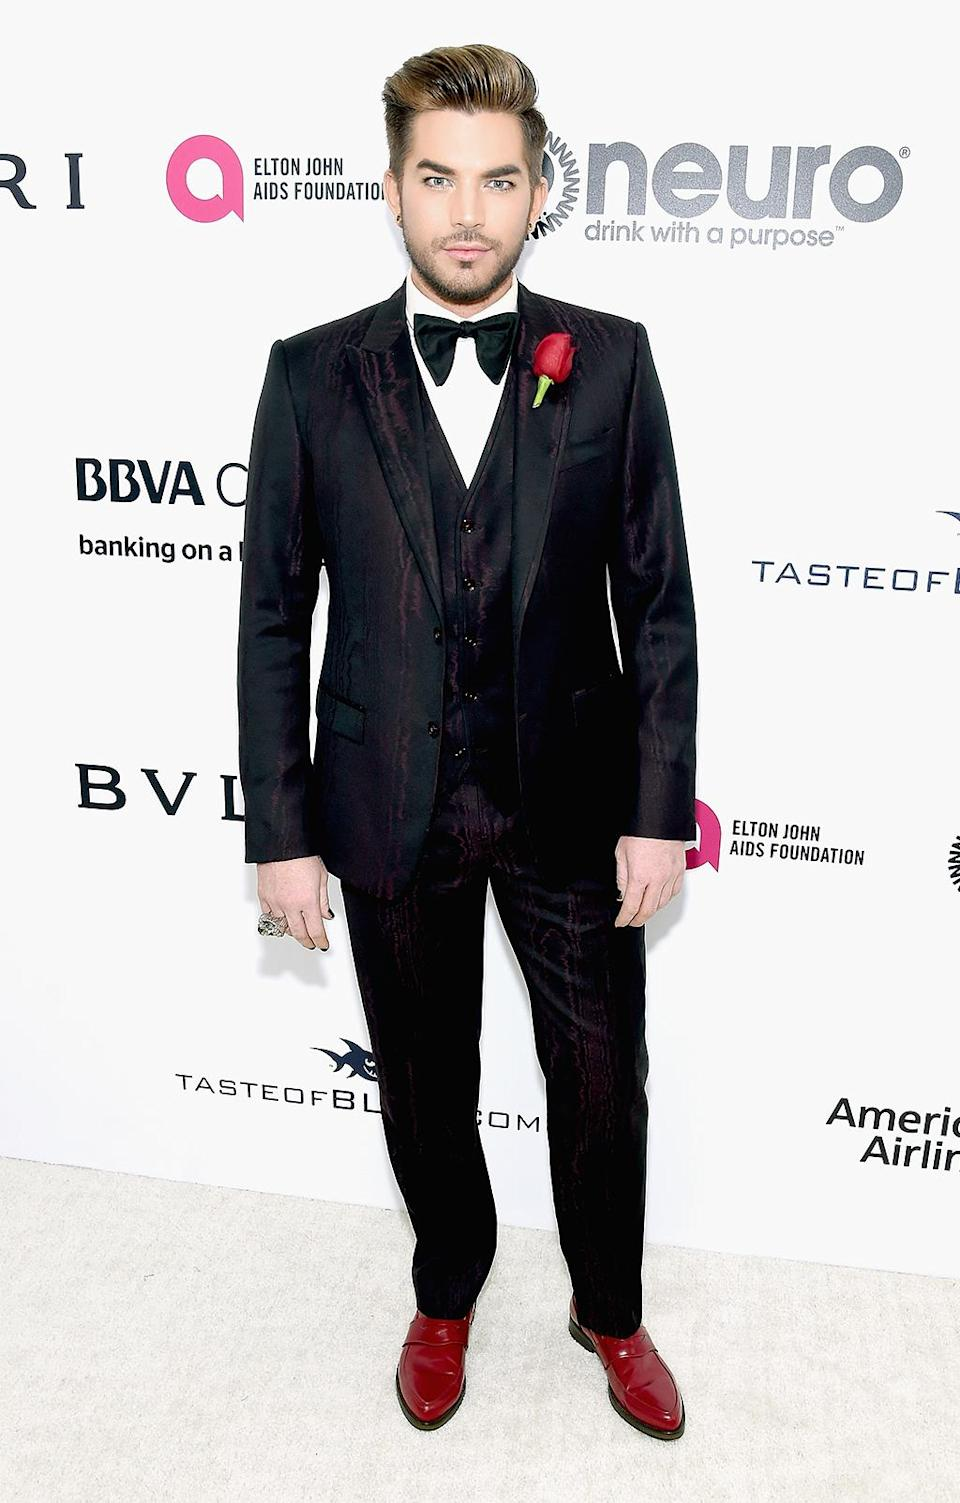 <p>Adam Lambert attends the 25th Annual Elton John AIDS Foundation's Academy Awards Viewing Party at The City of West Hollywood Park on February 26, 2017 in West Hollywood, California. (Photo by Jamie McCarthy/Getty Images for EJAF) </p>